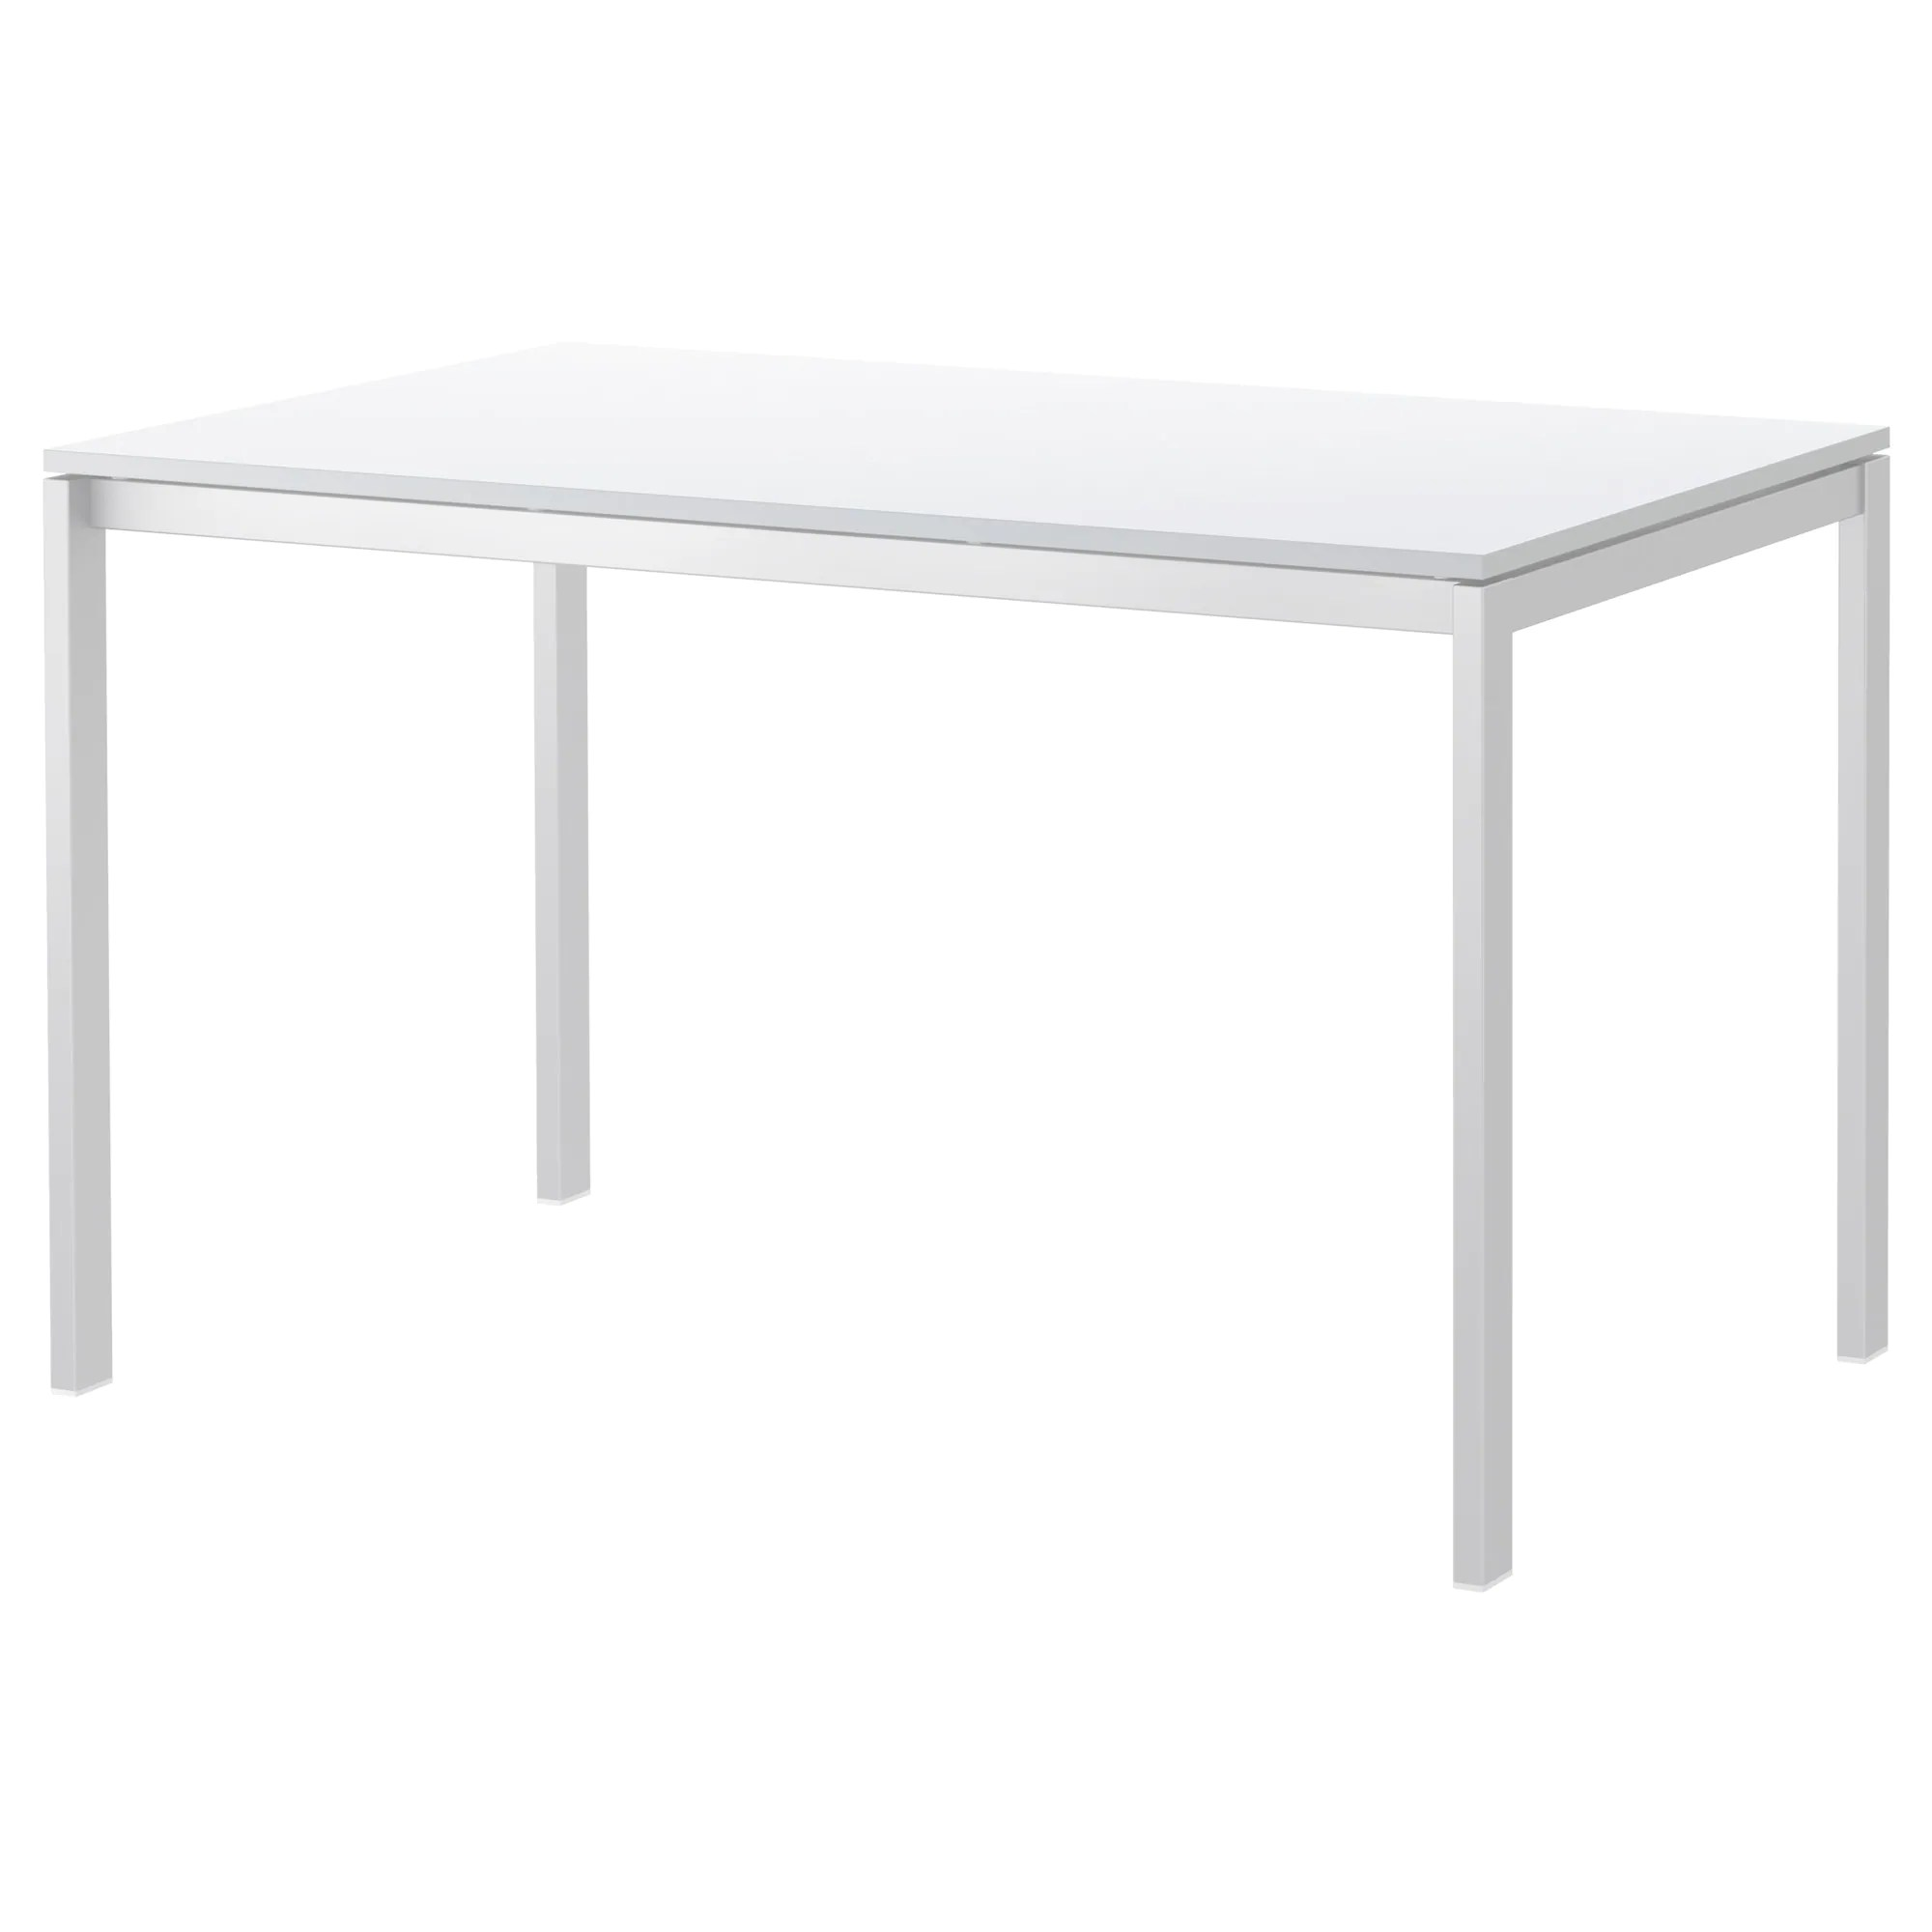 Table Metal Blanc Melltorp Table White